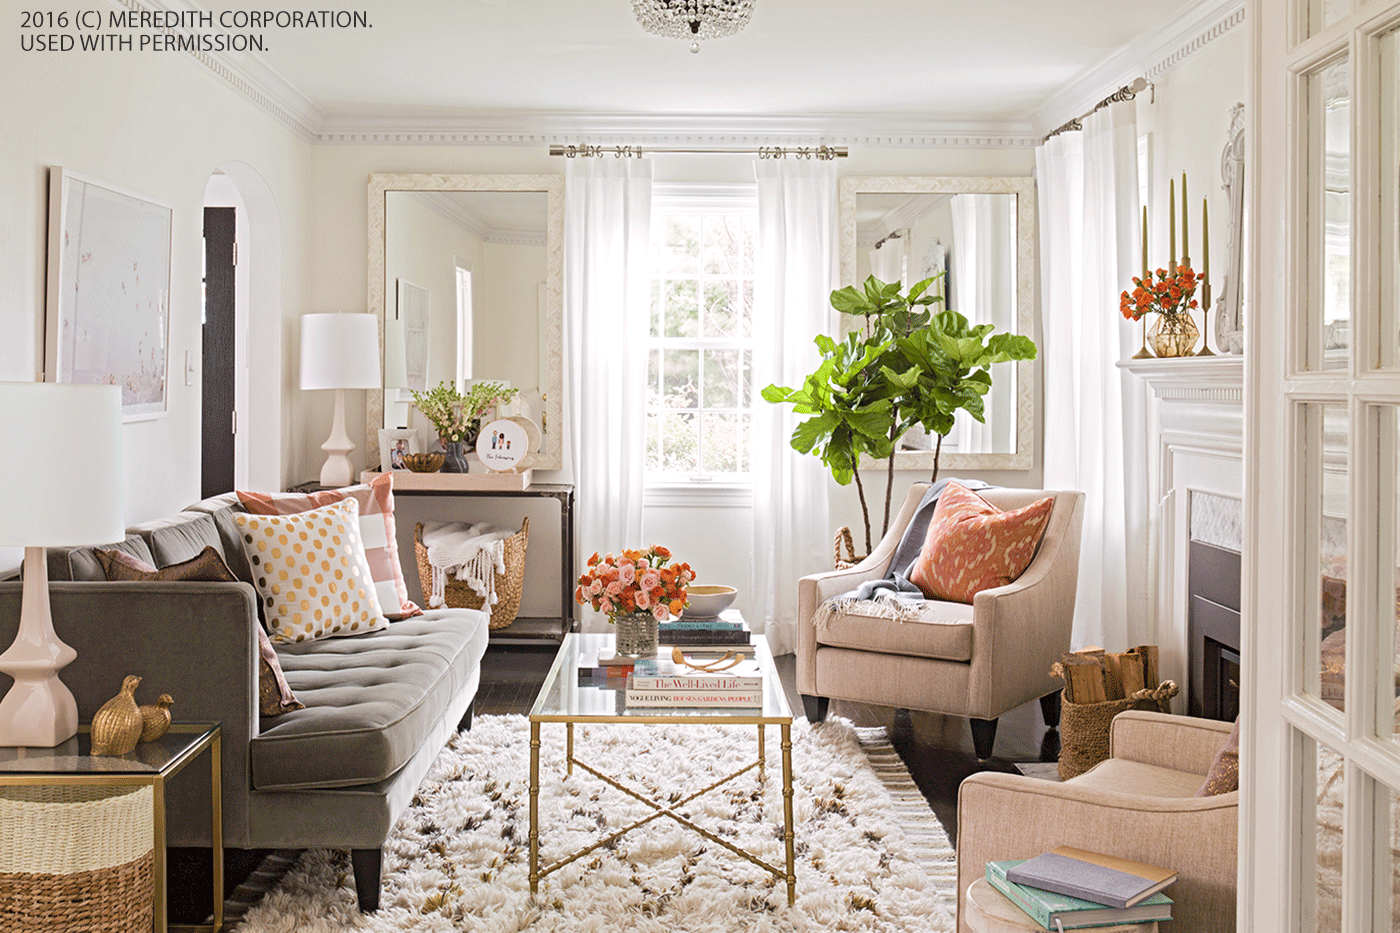 Living Room Solutions How To Design Small Spaces With Style